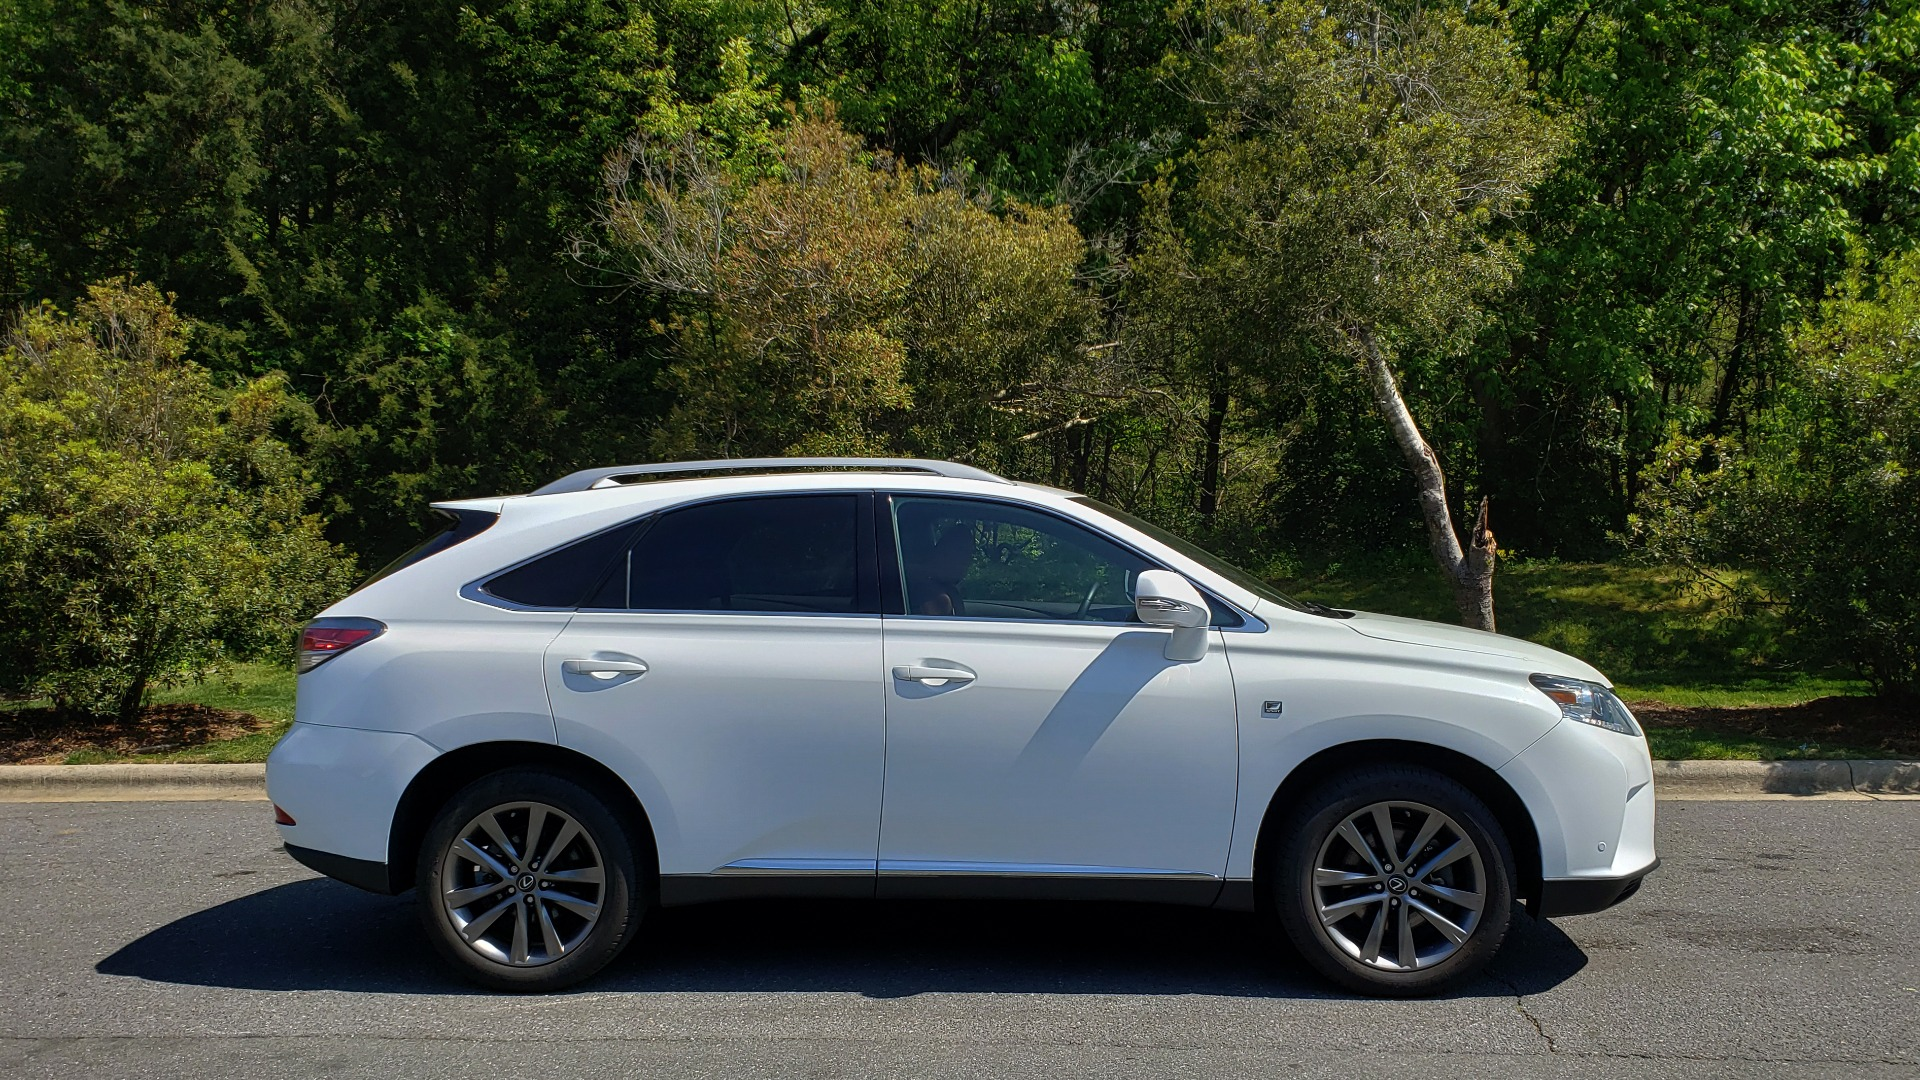 Used 2015 Lexus RX 350 AWD F-SPORT / NAV / SUNBROOF / REARVIEW / BSM / PARK ASST for sale Sold at Formula Imports in Charlotte NC 28227 5